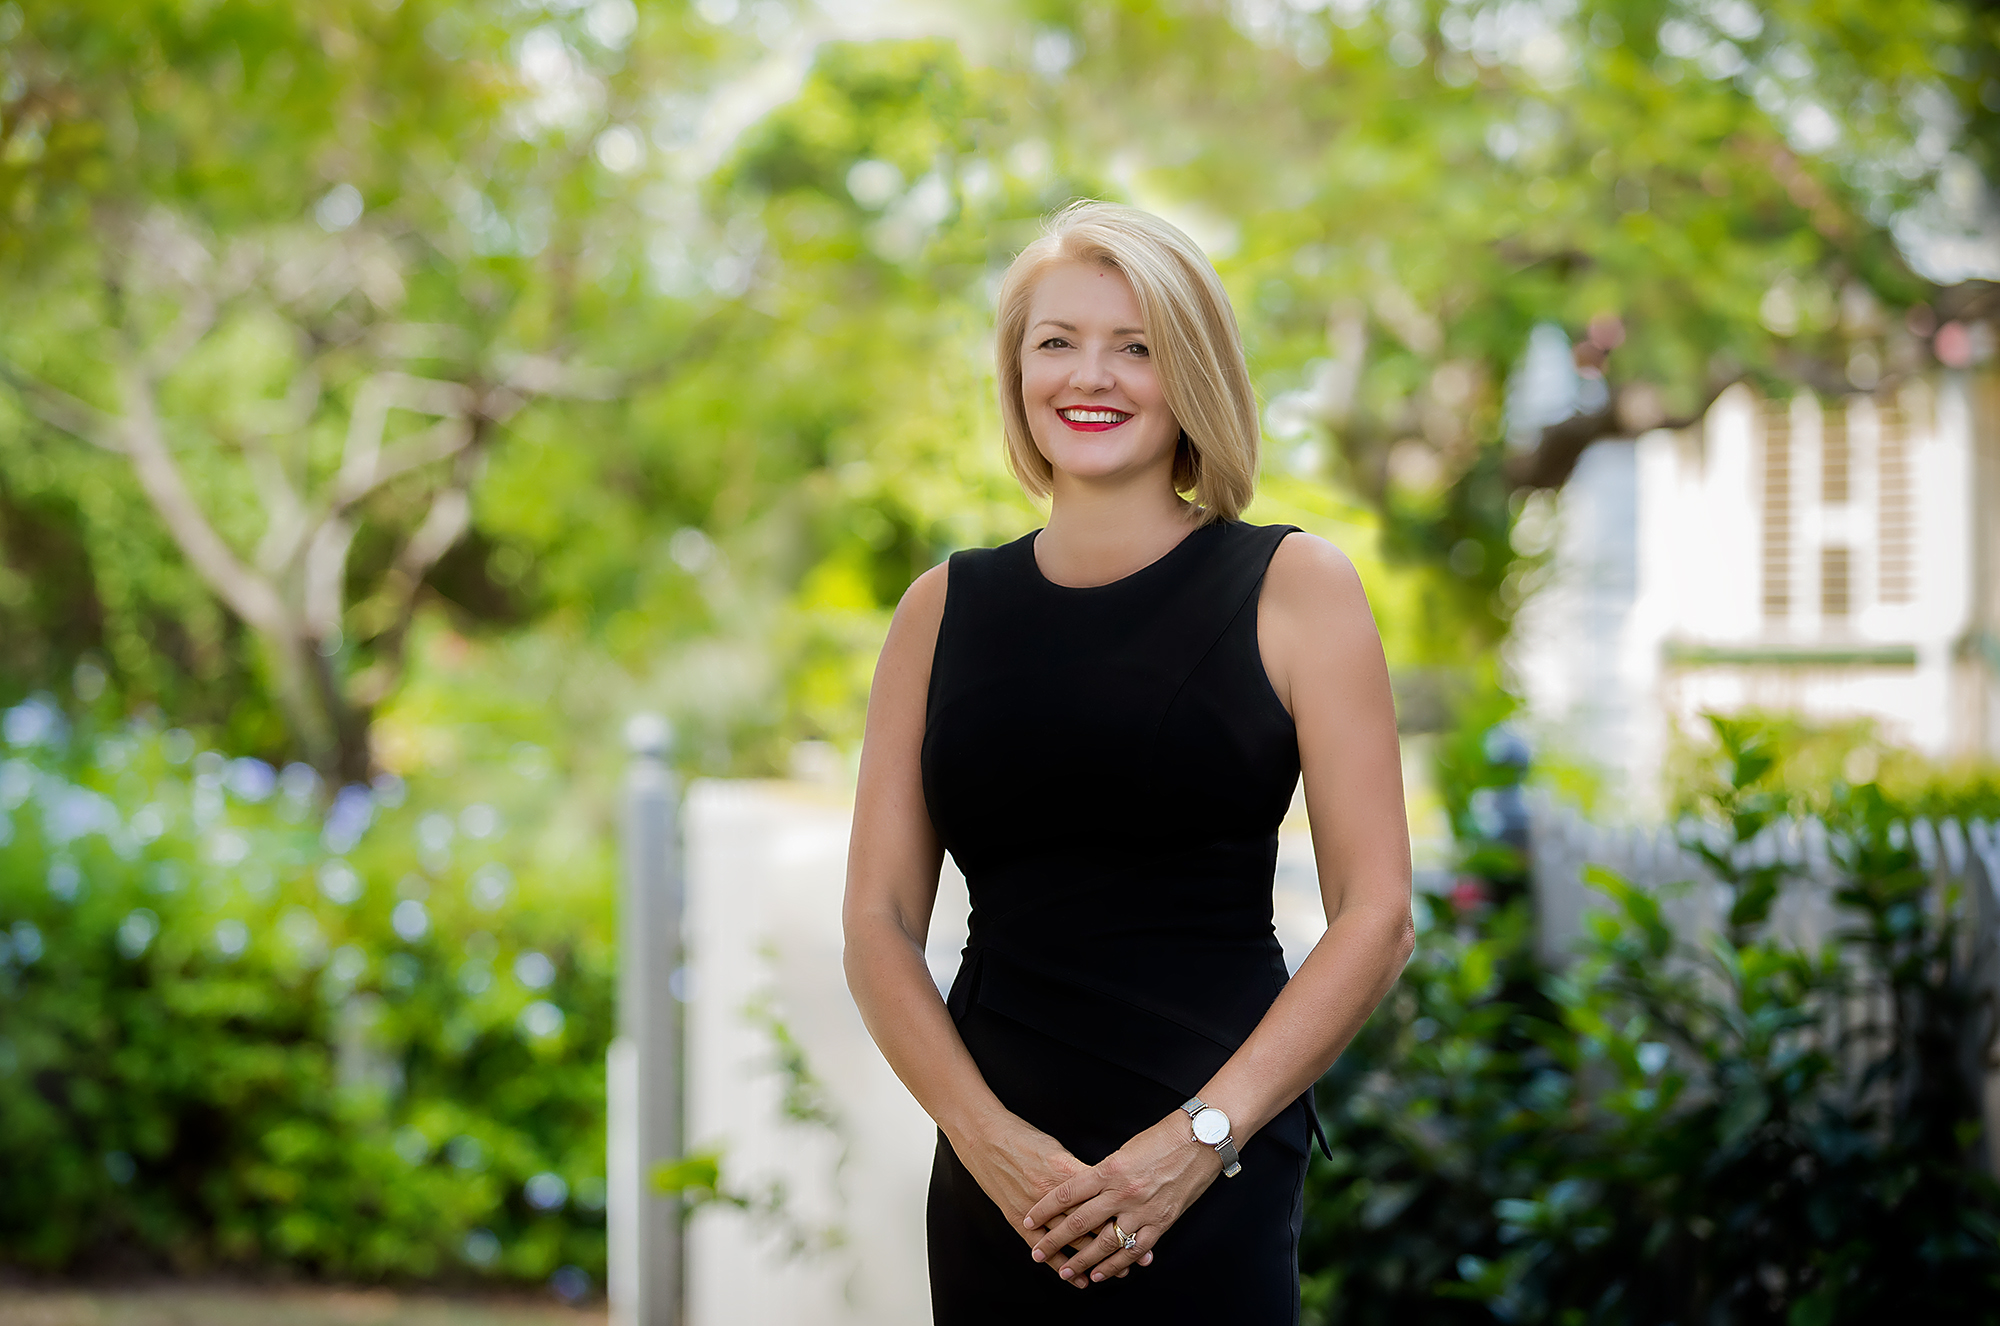 Brigette: A very inspiring strong woman + Elite real estate agent in Ashgrove, hitting unreal goals